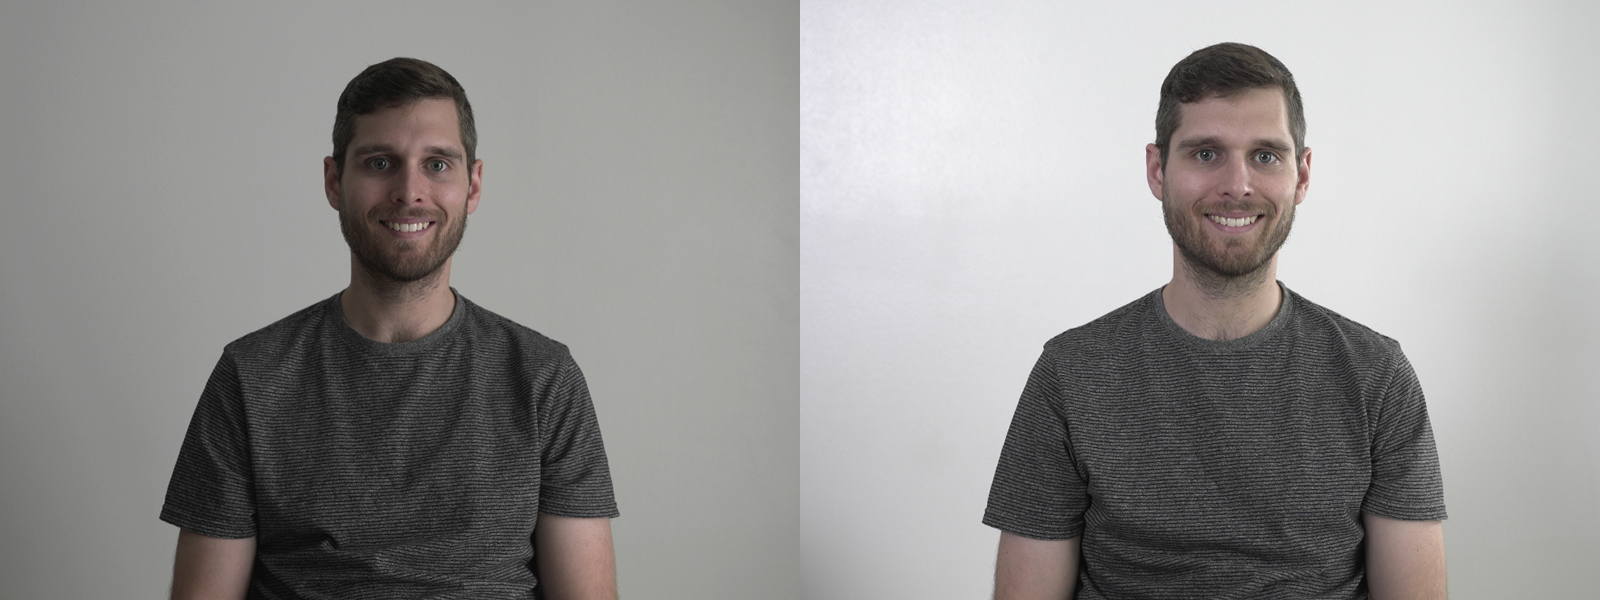 difference between basic lighting and proper lighting technique